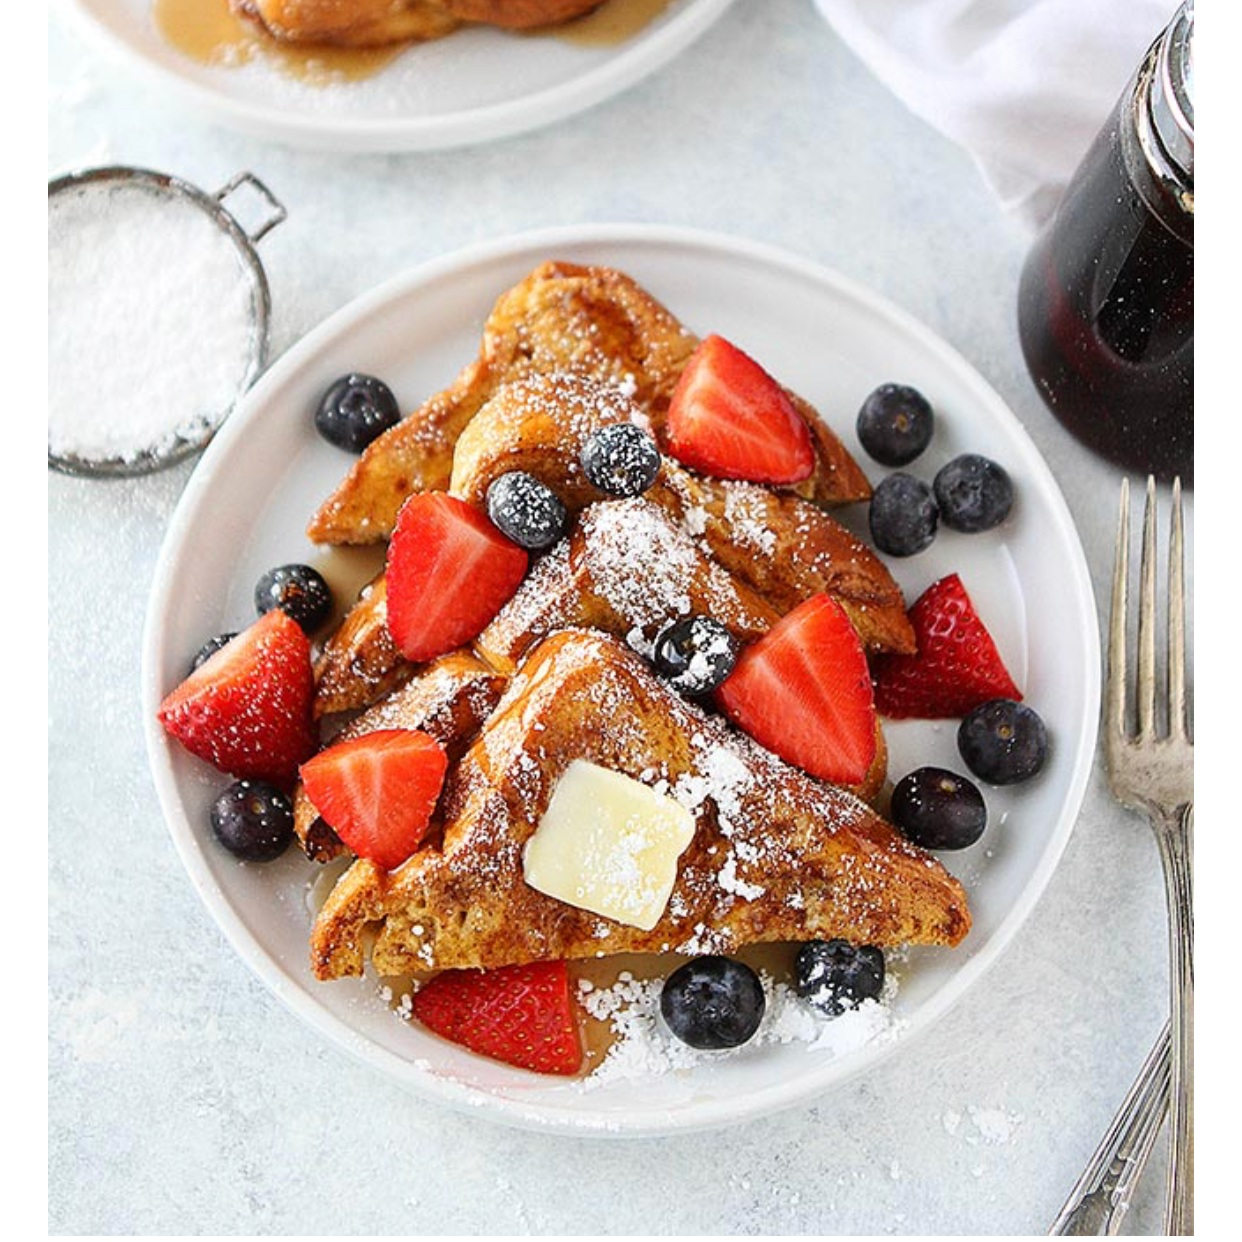 - Email this recipe to your hubby for Mother's Day breakfast in bed! You can't go wrong with classic french toast.Find it here.